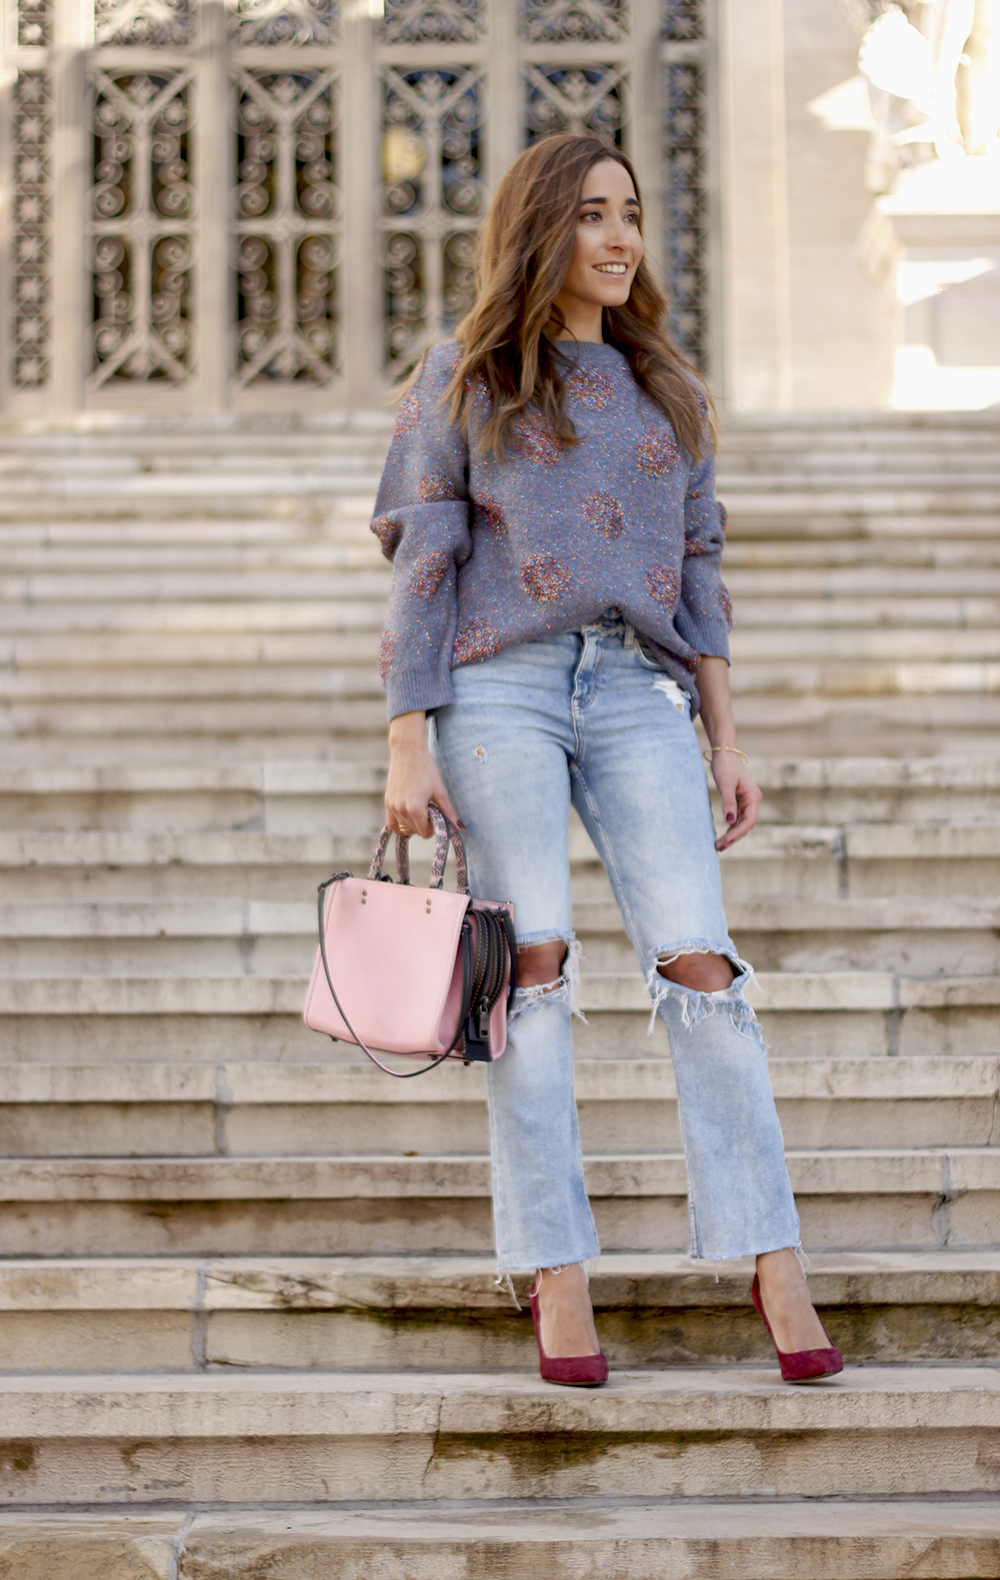 GRAY CHRISTMAS JERSEY ripped jeans pink coaach bag burgundy heels street style fall outfit 20186767